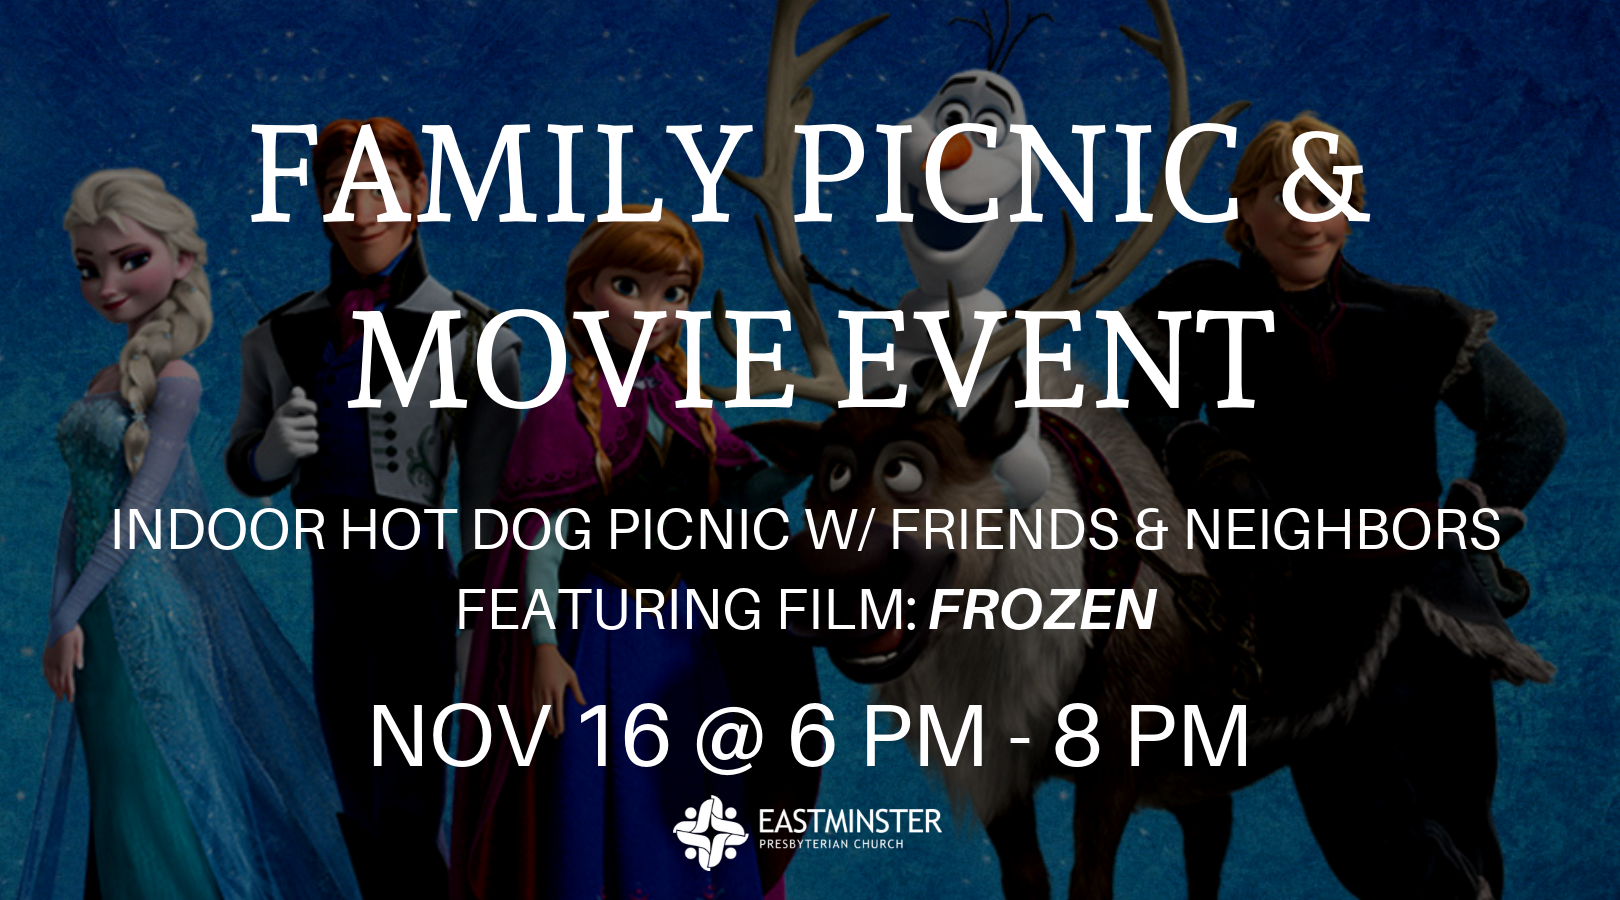 Family Picnic & Movie Event Link